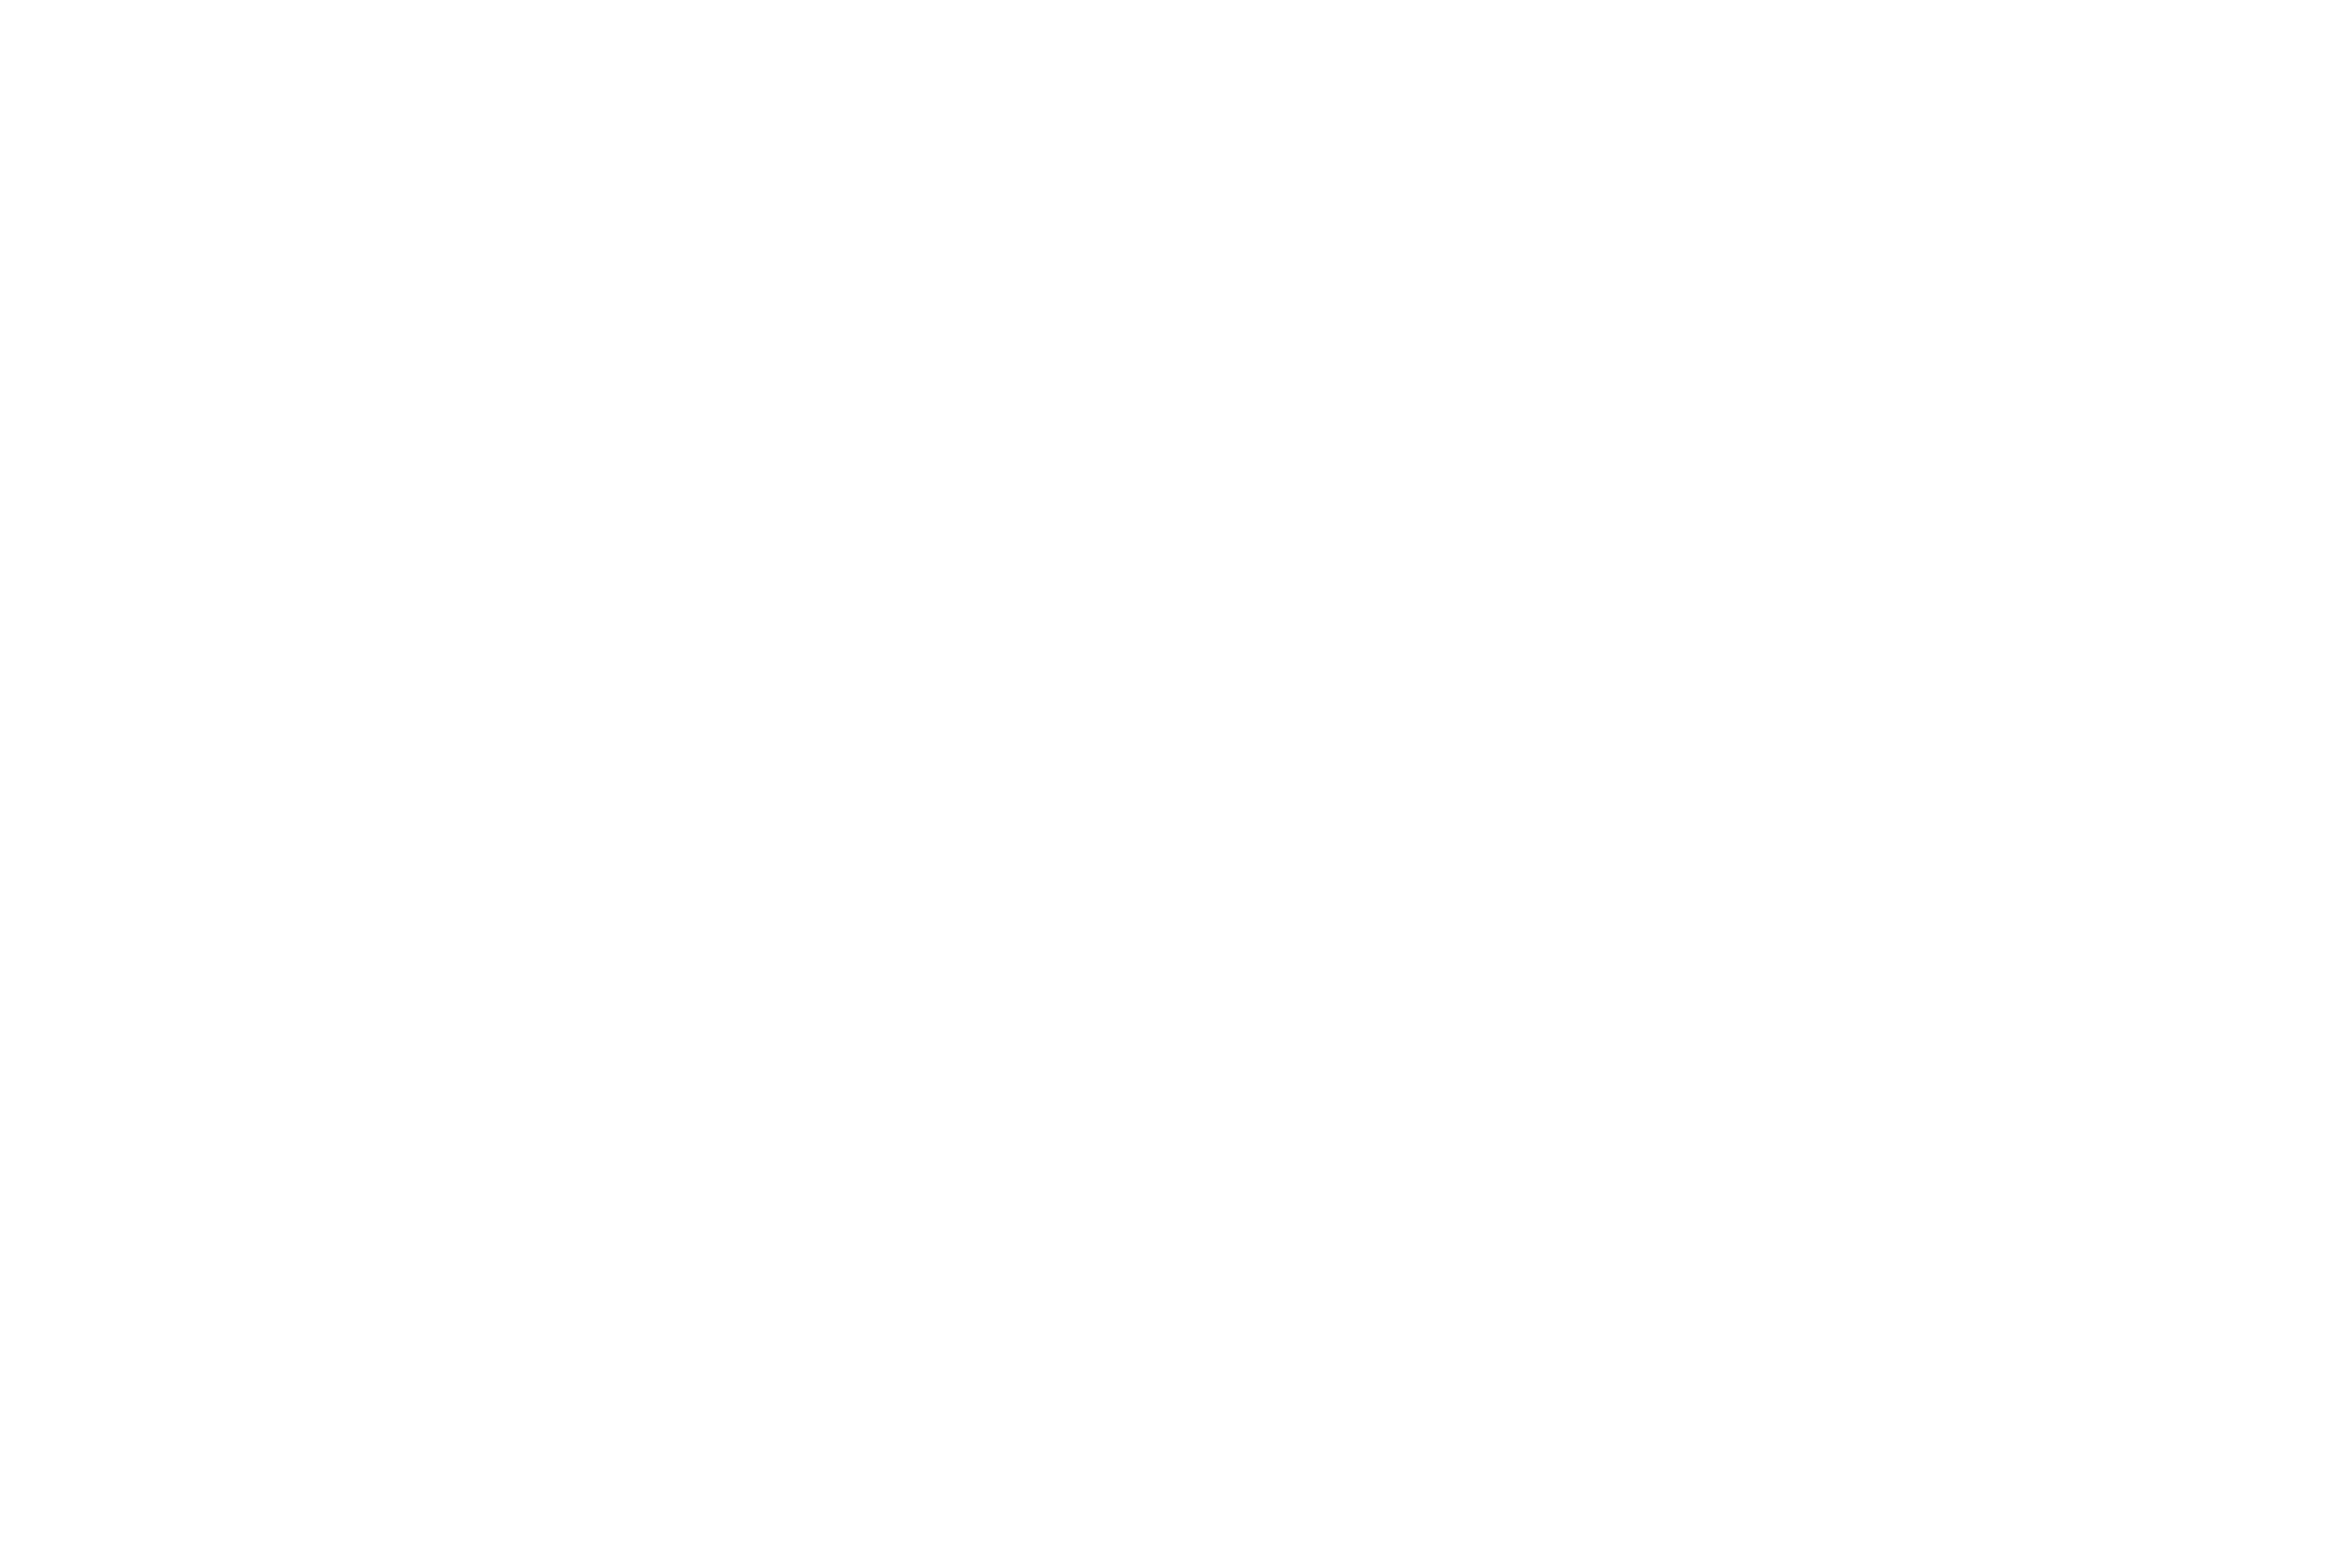 John Williams Photography